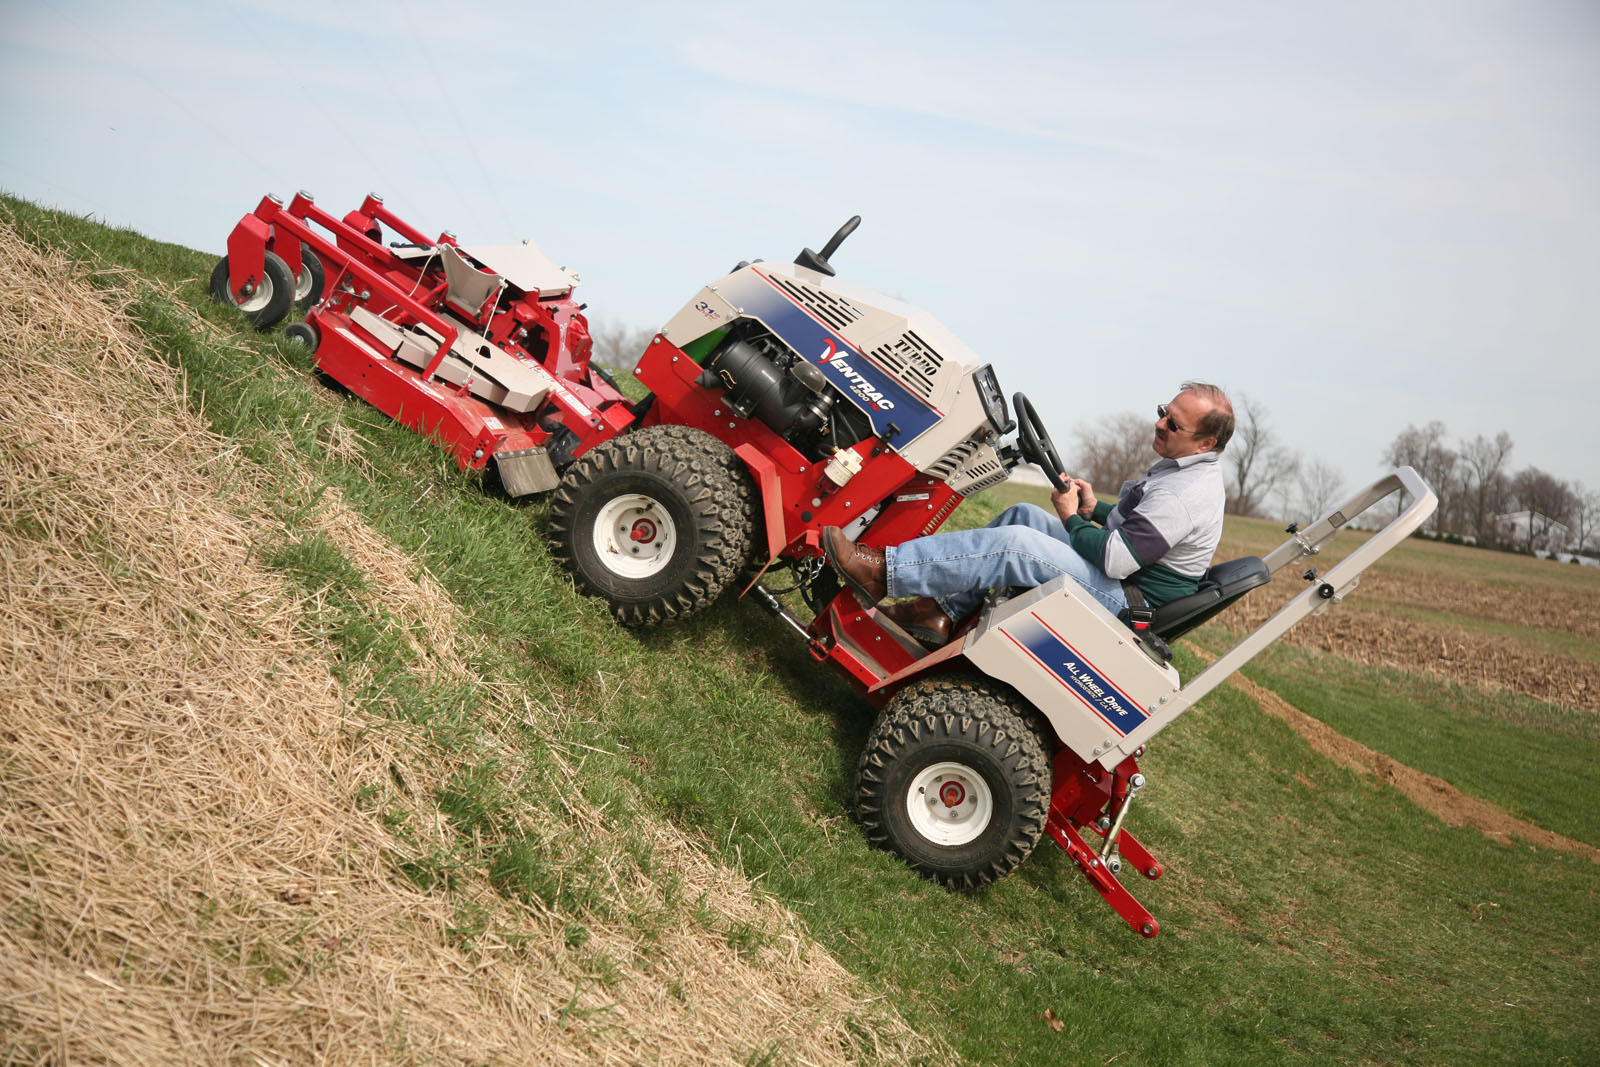 Ventrac slope mowing